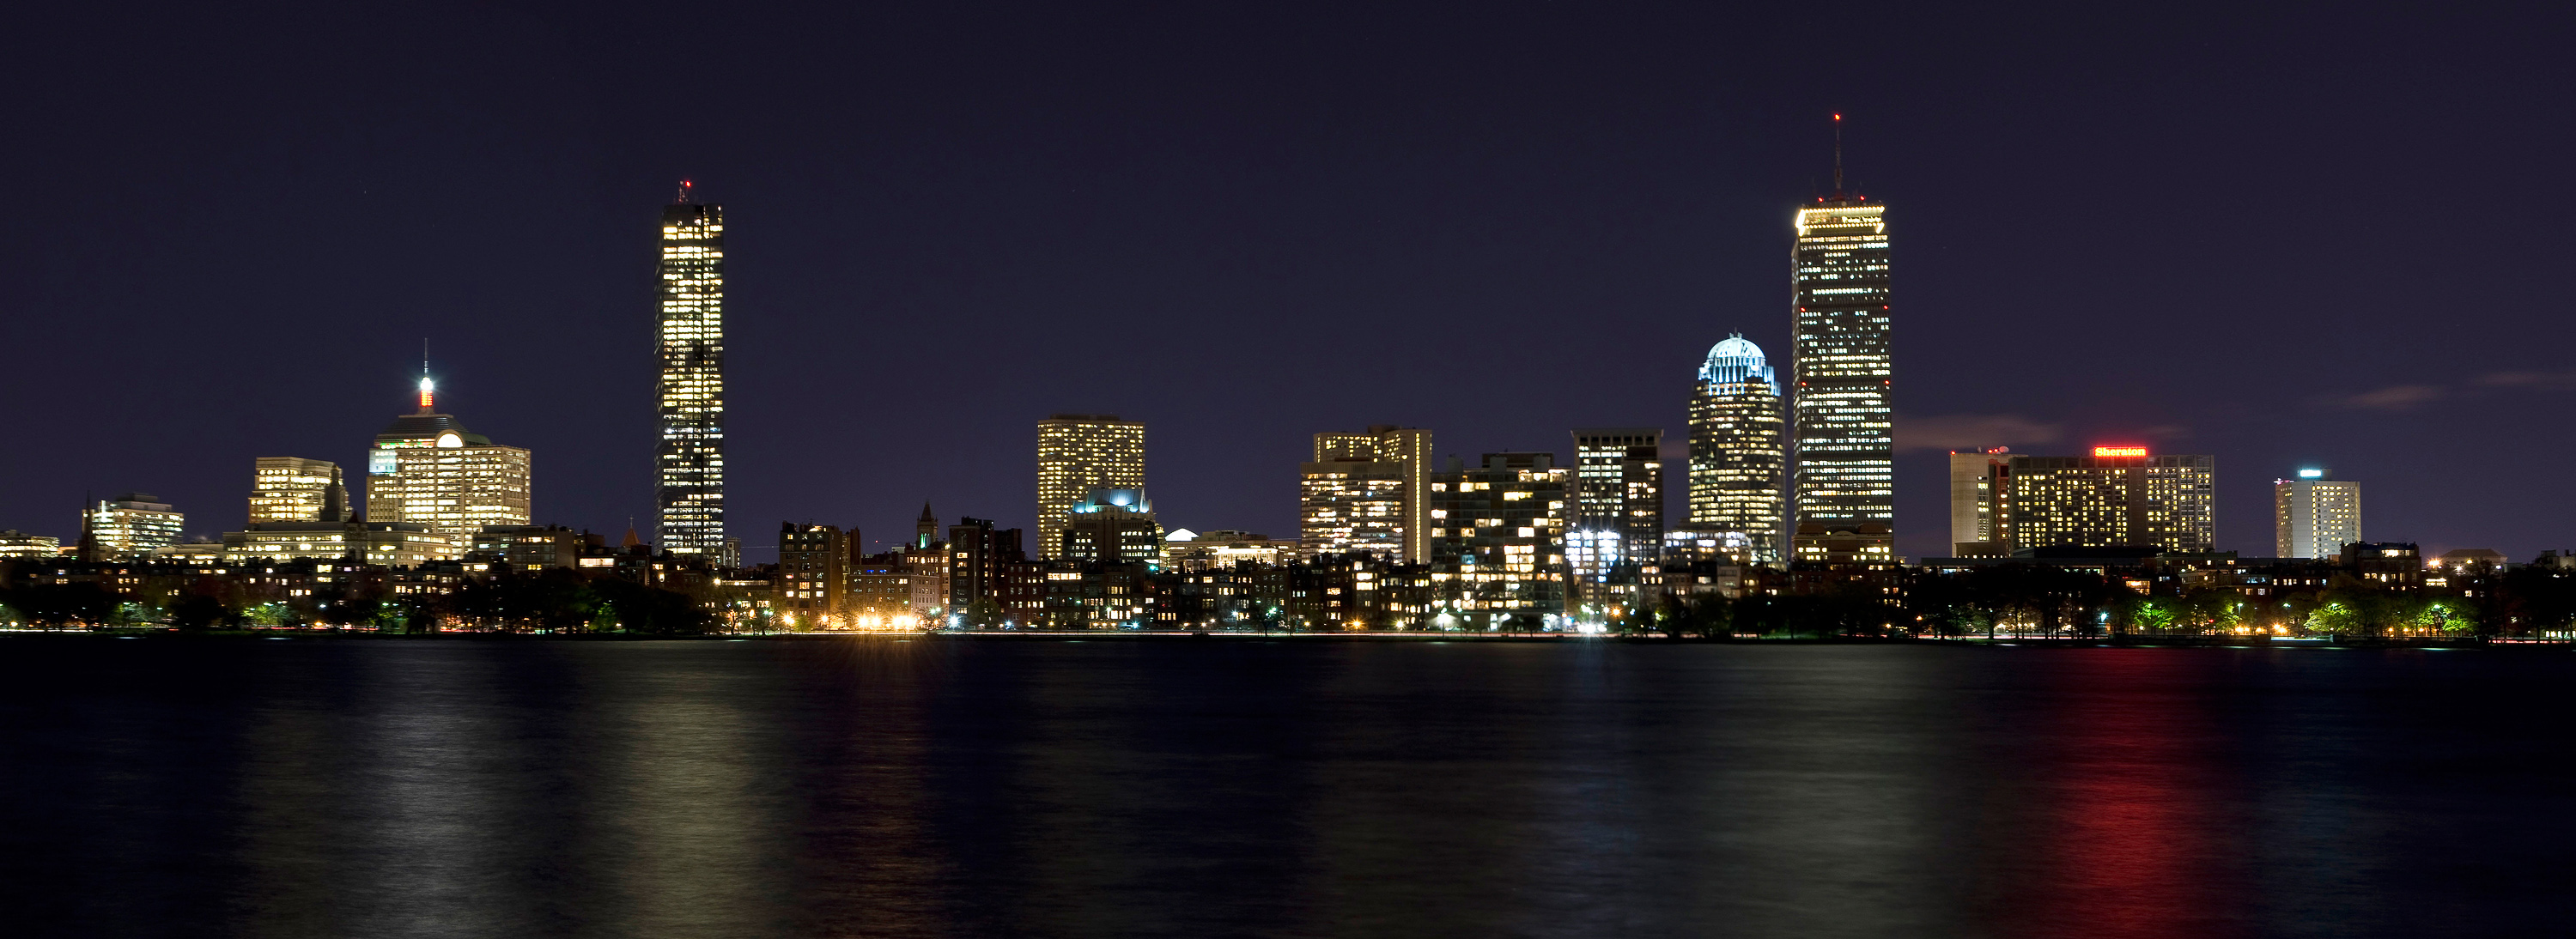 Boston, MA Skyline at Night